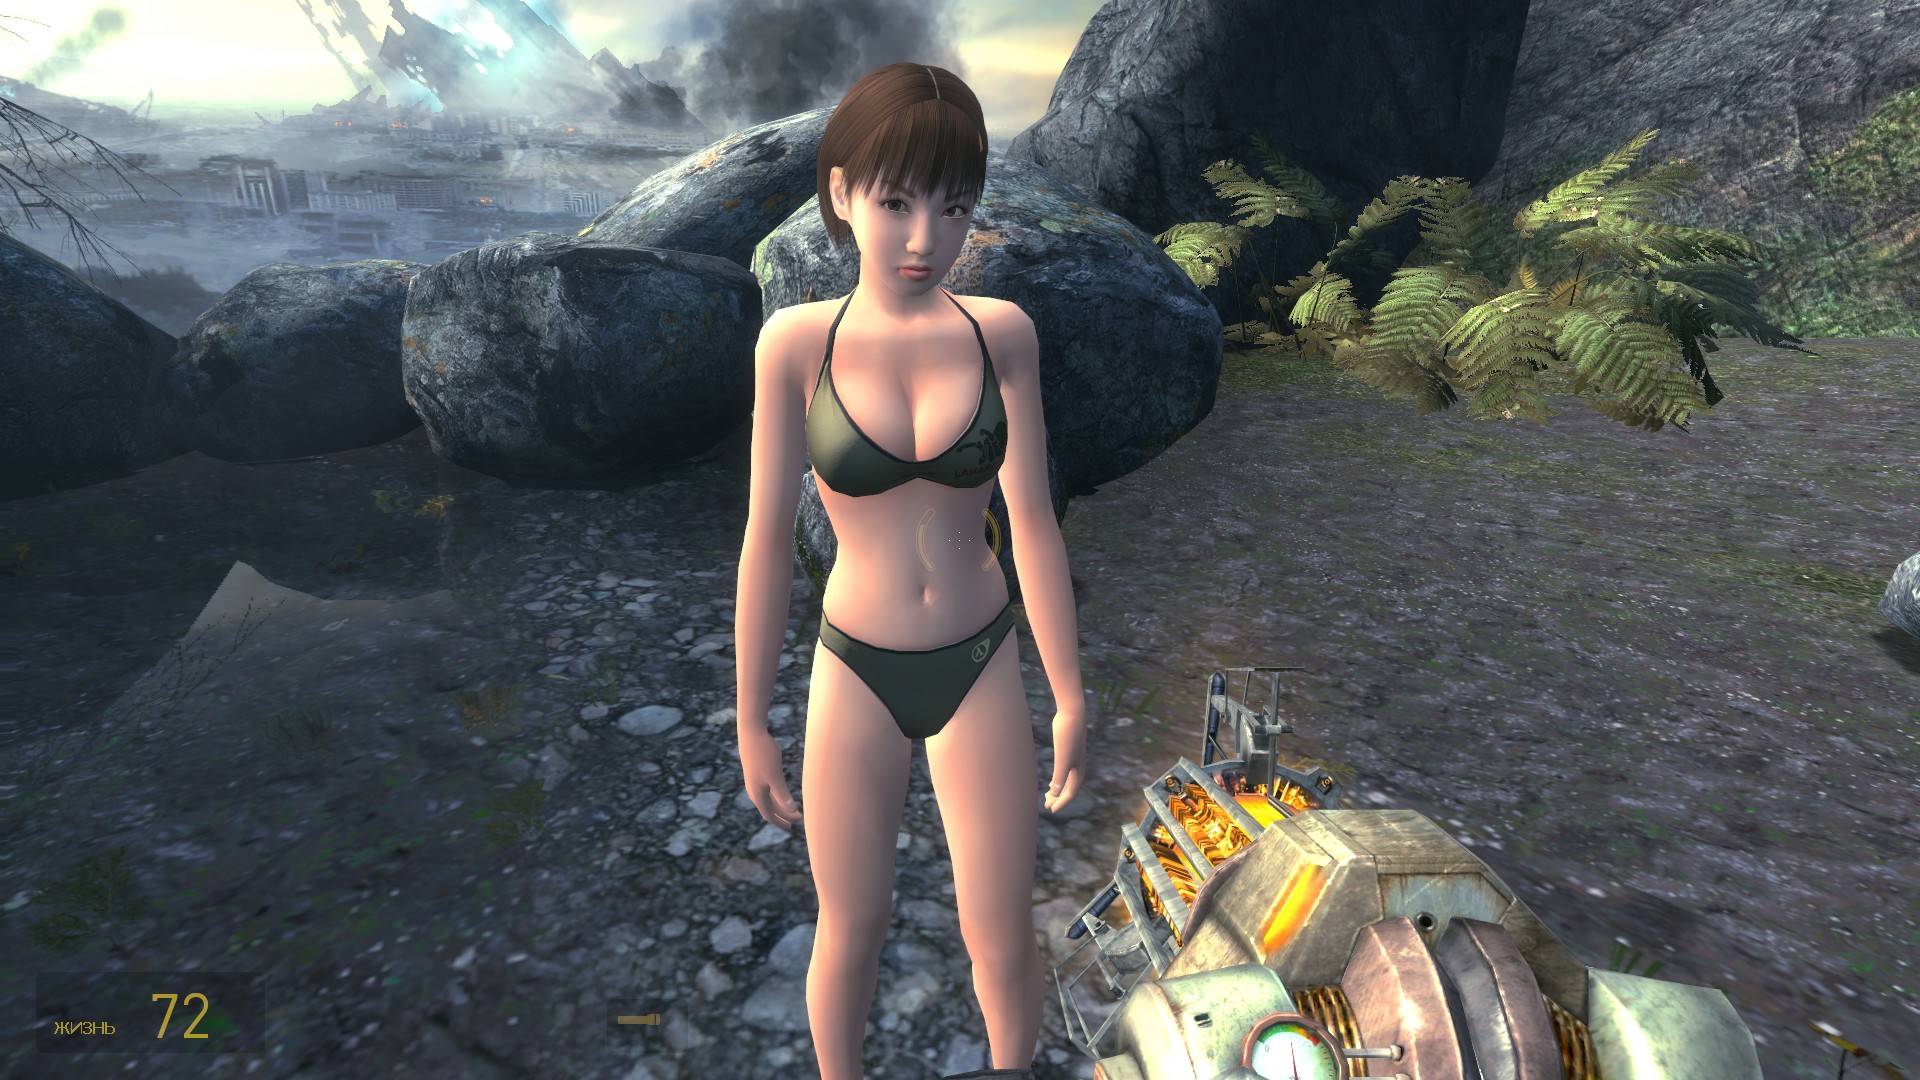 Half life 2 people naked porno pics